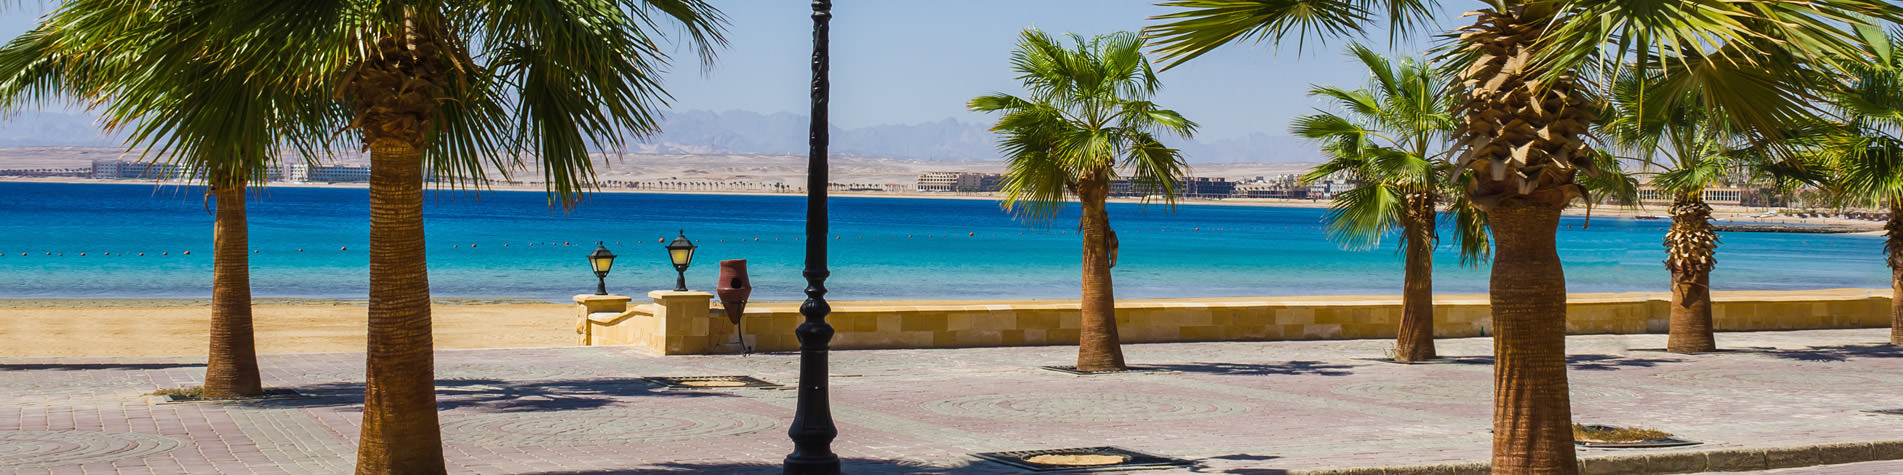 Hurghada Holidays with Cyplon Holidays